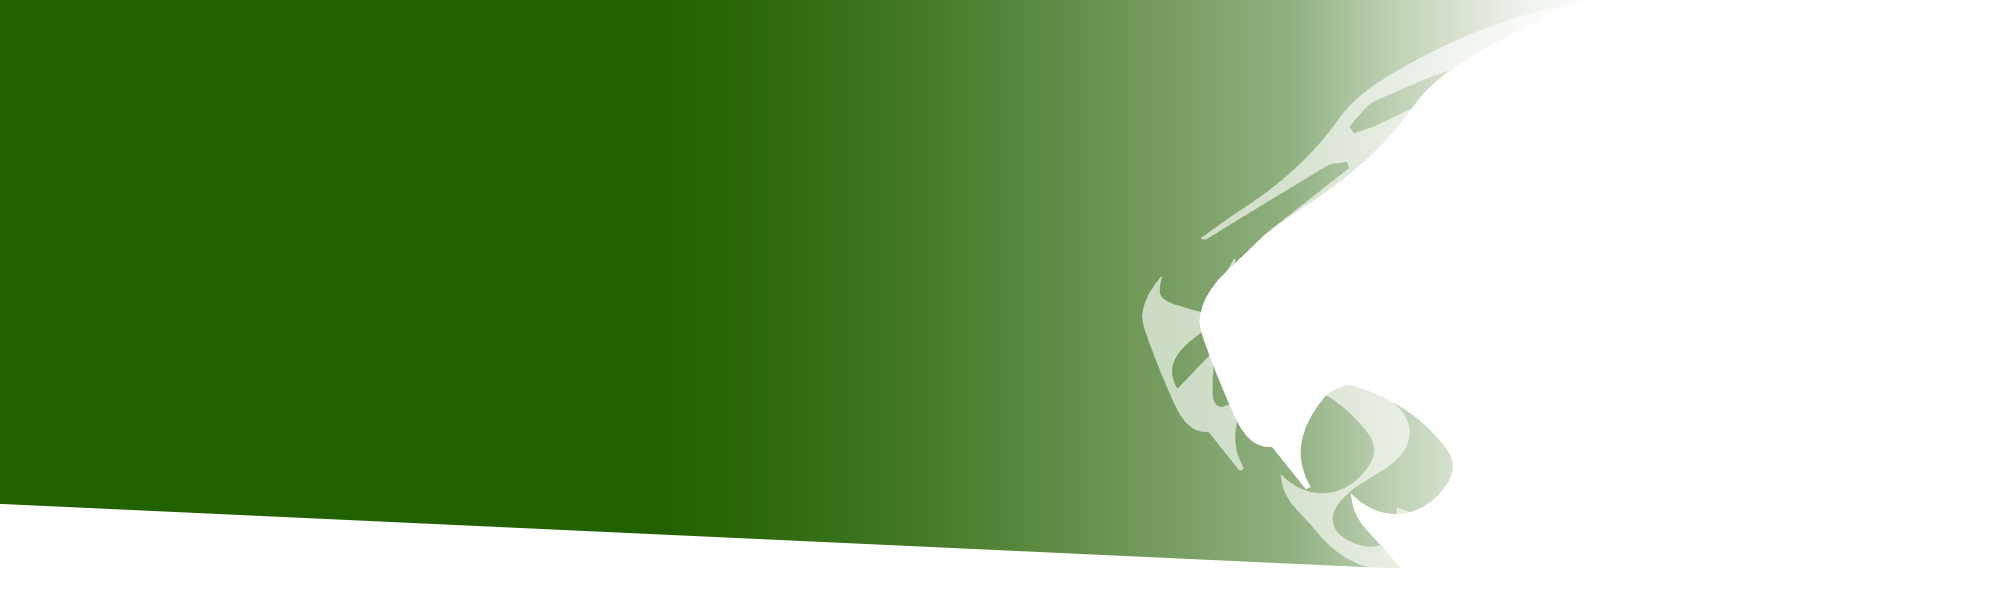 Green banner with white Panthera panther head overlay